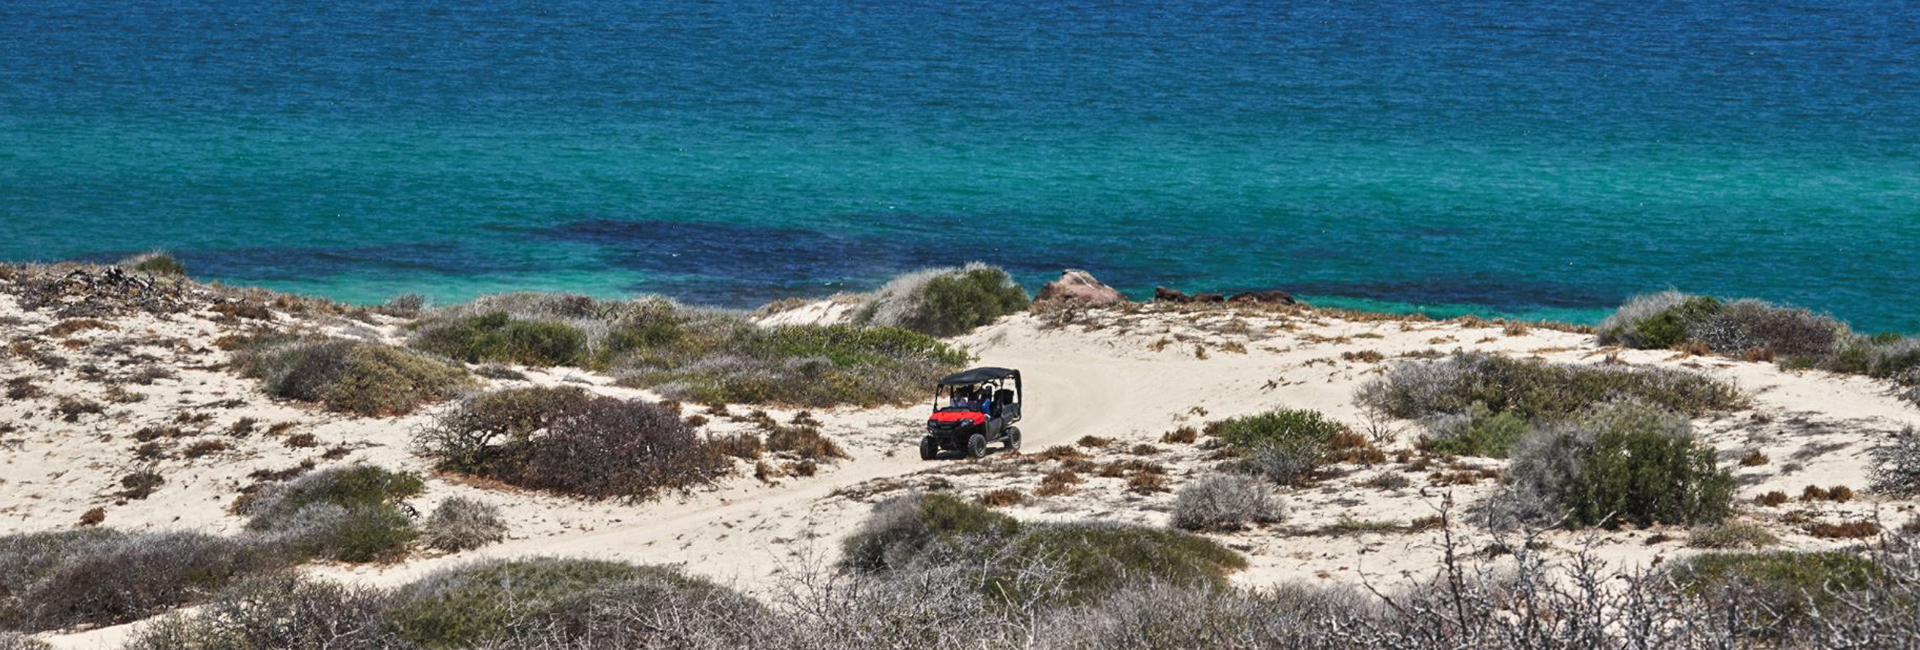 cabo offroad